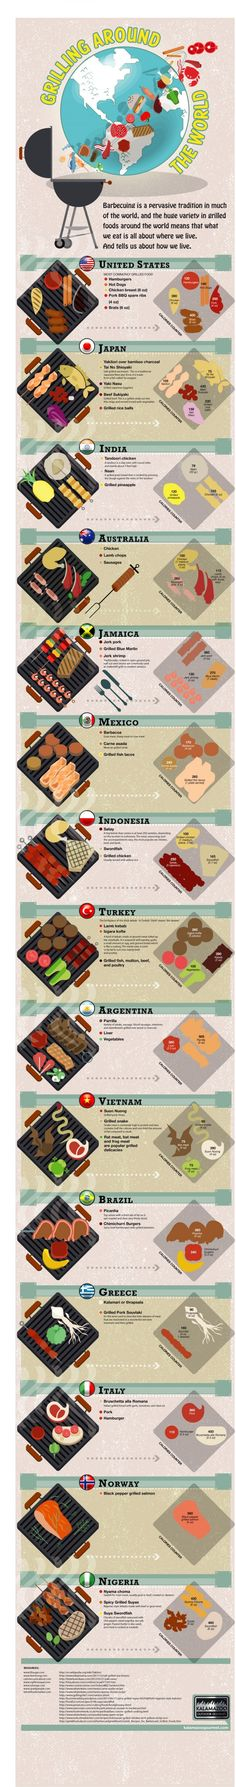 grilling-around-the-world #infographic #food #food infographic #bbq #grilling